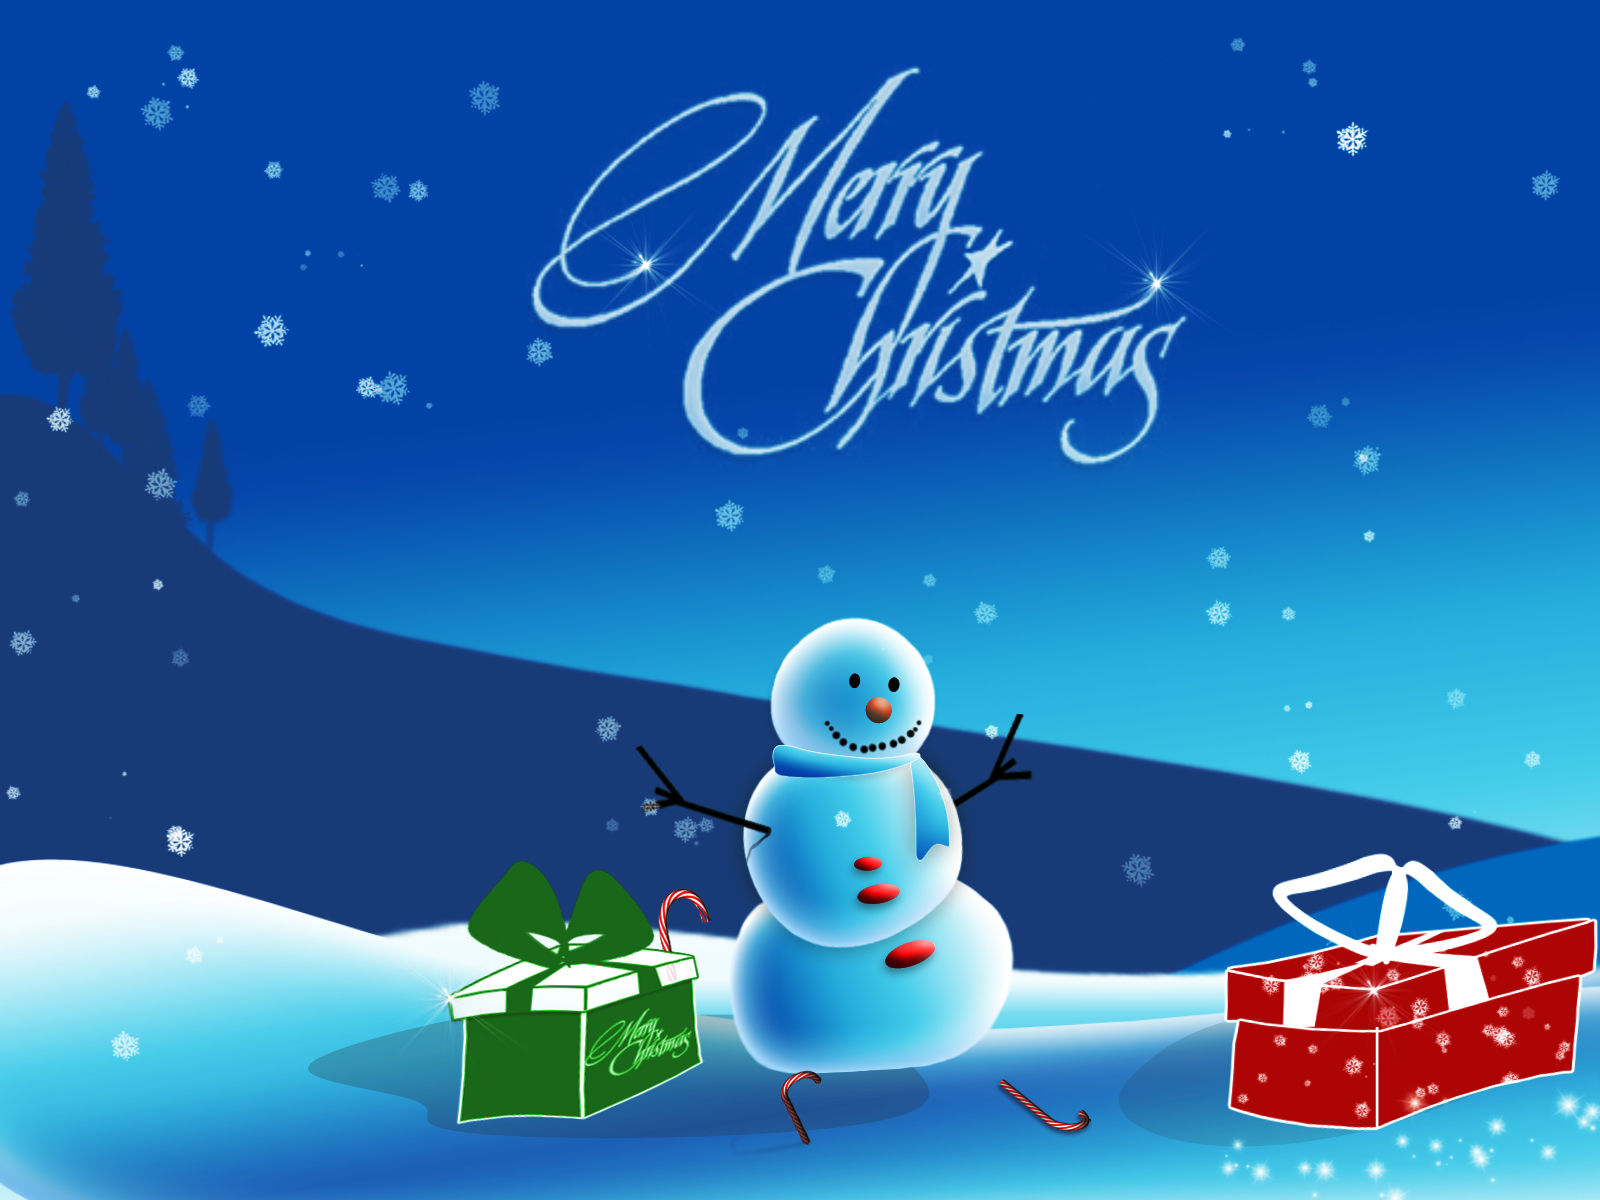 merry christmas wallpaper